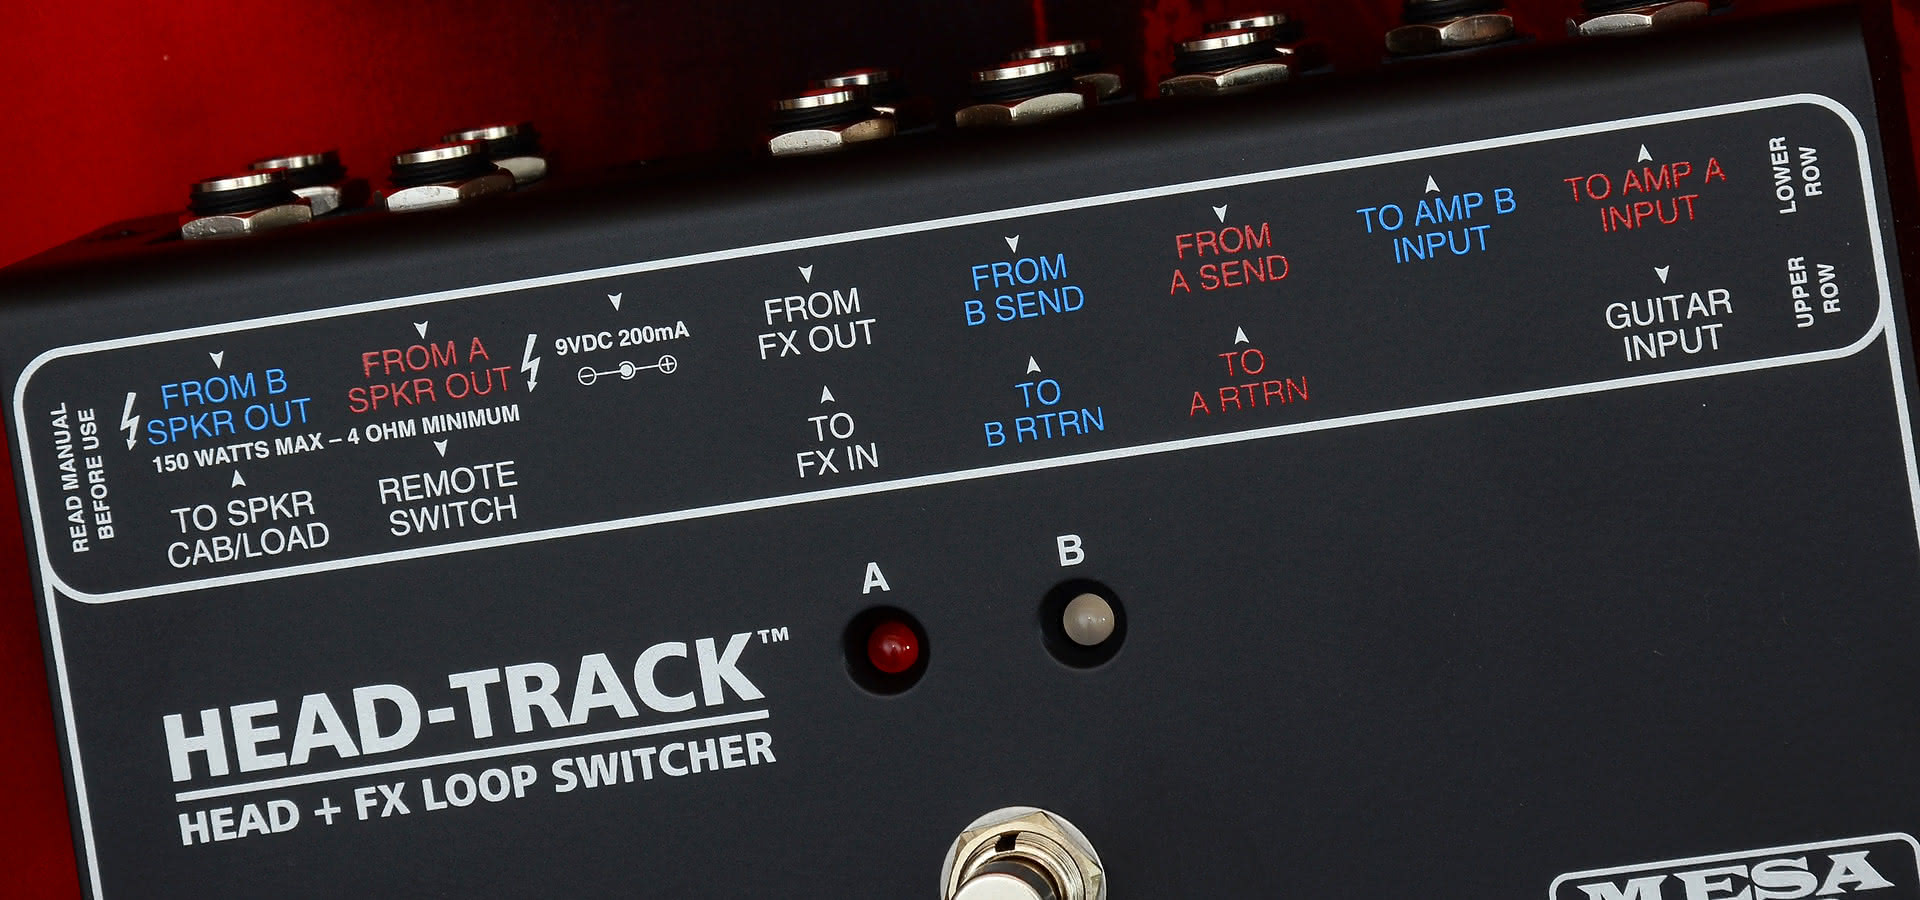 Switch-Track, Head-Track